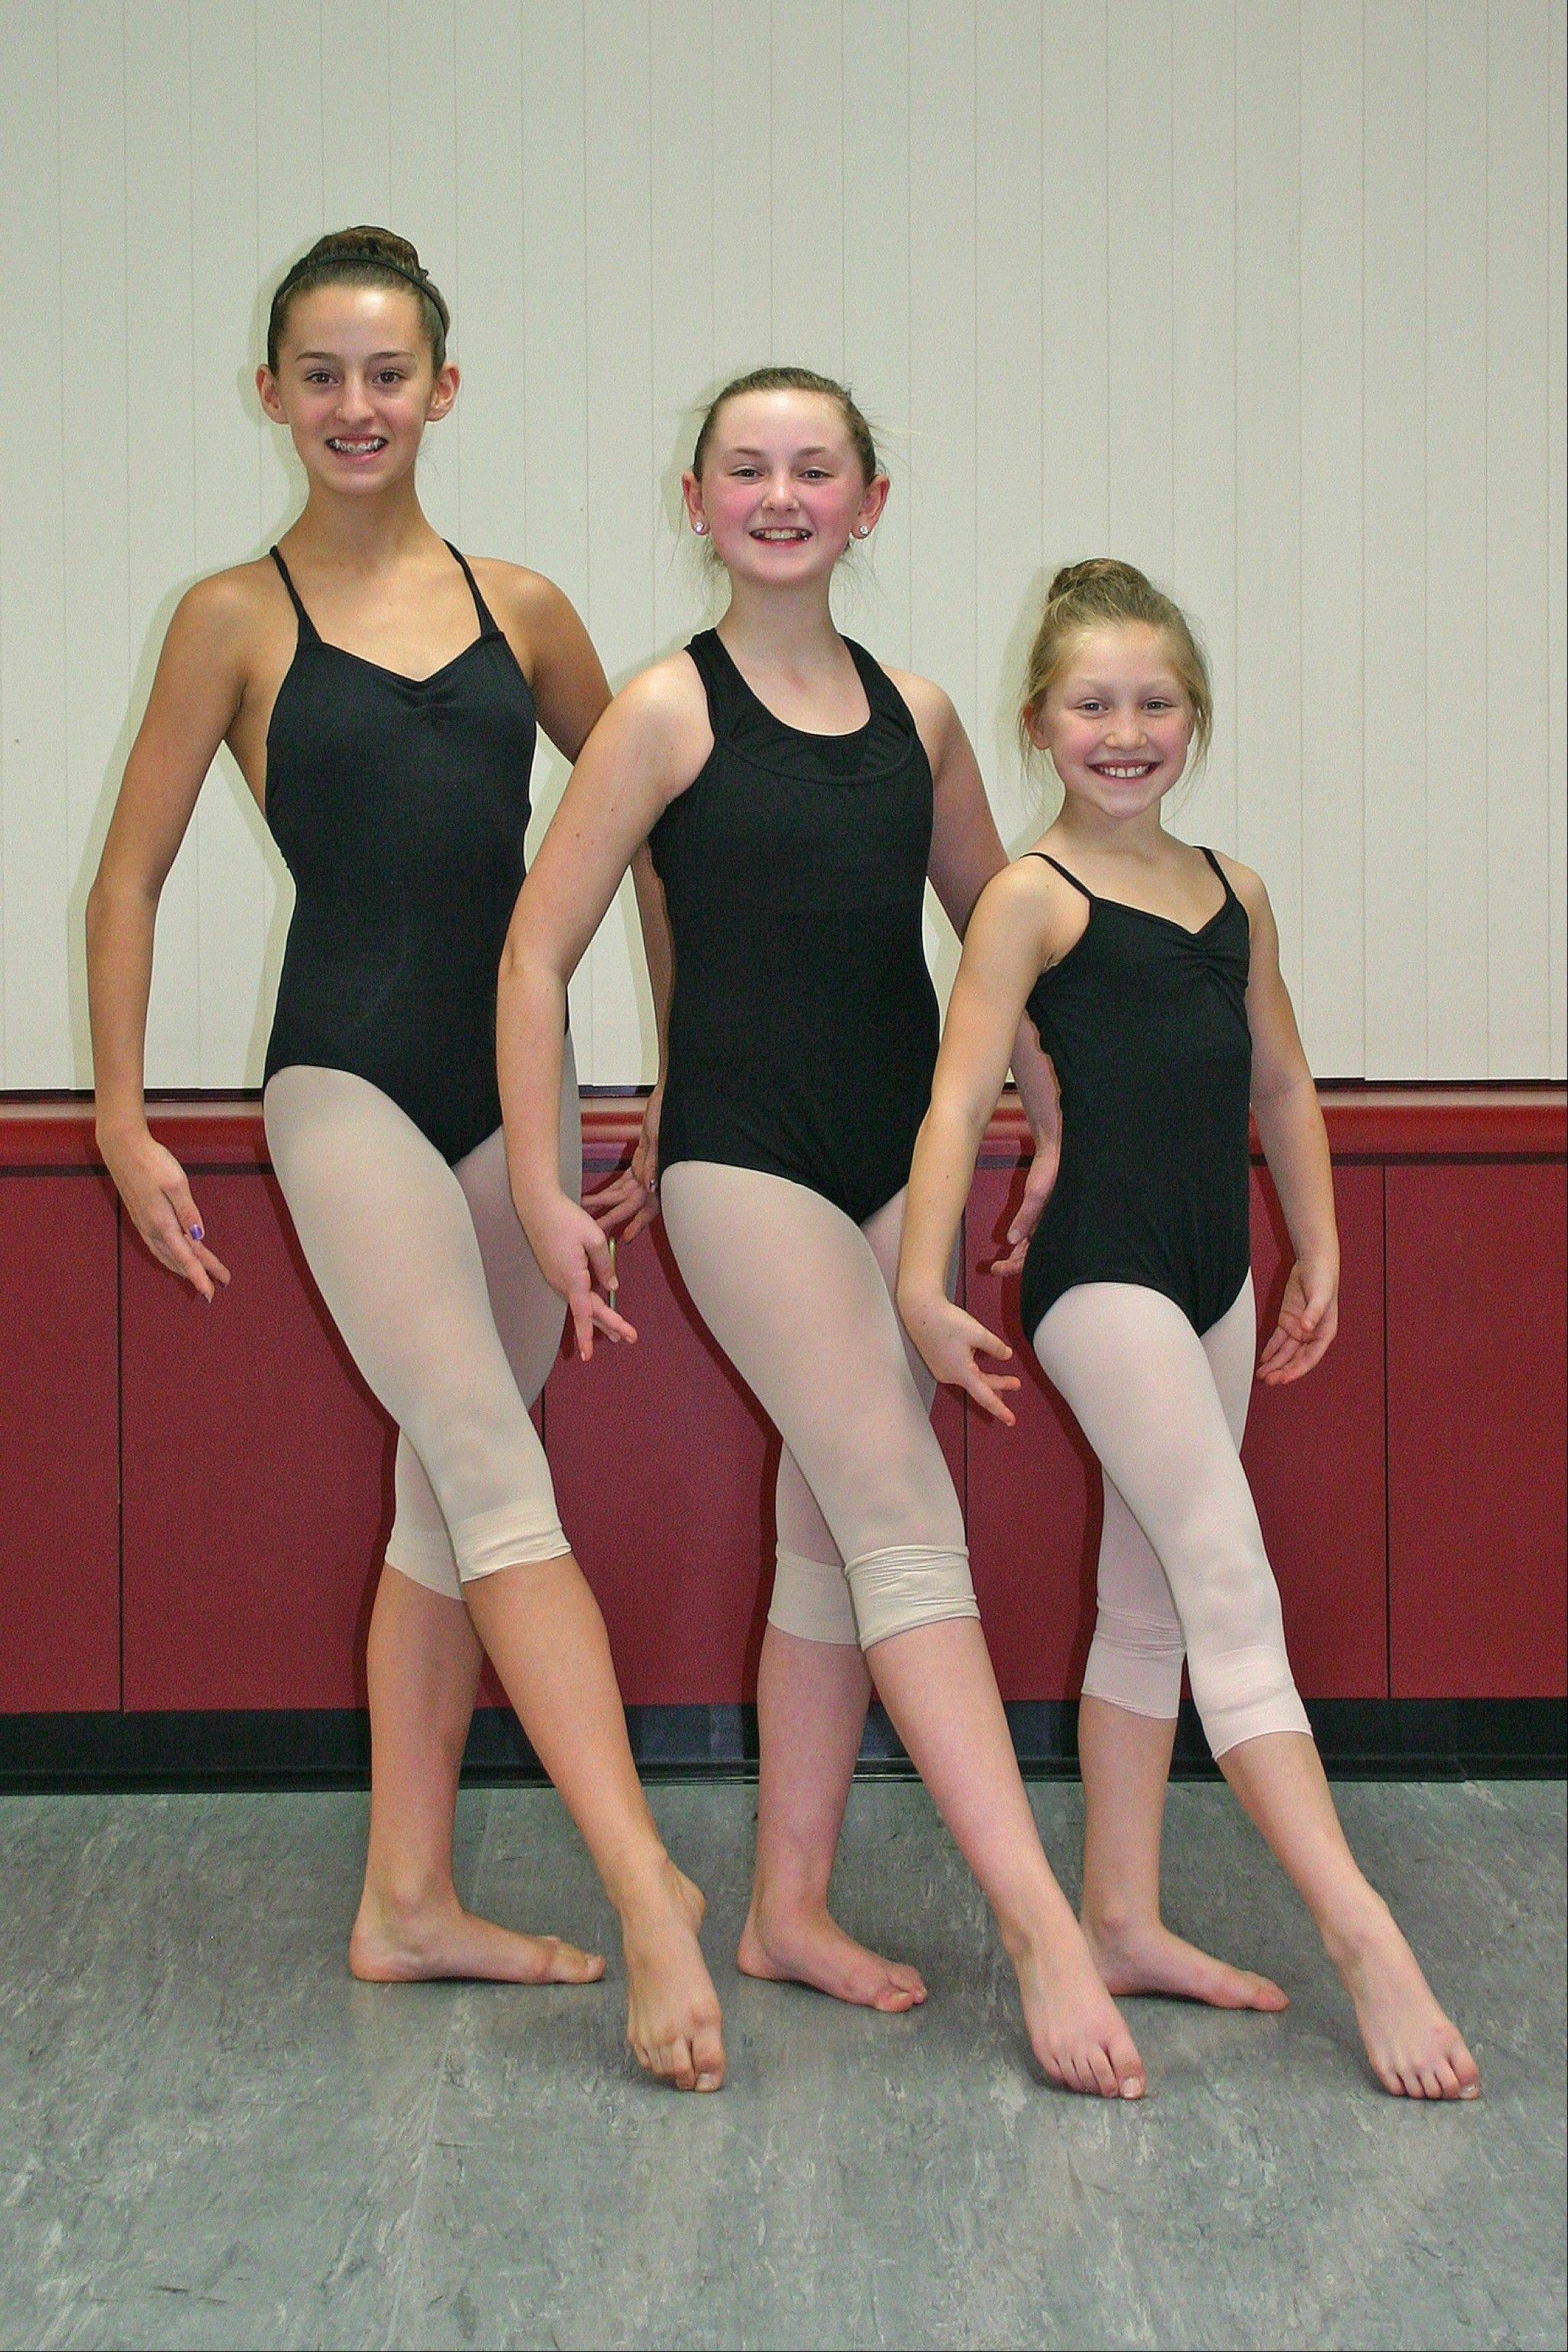 From left, Meghan Hanrahan, Kim Fairhead, and Jordin Suwalski, representing Artistry in Motion, won top awards at the November 9-11, 24Seven Dance Competition.